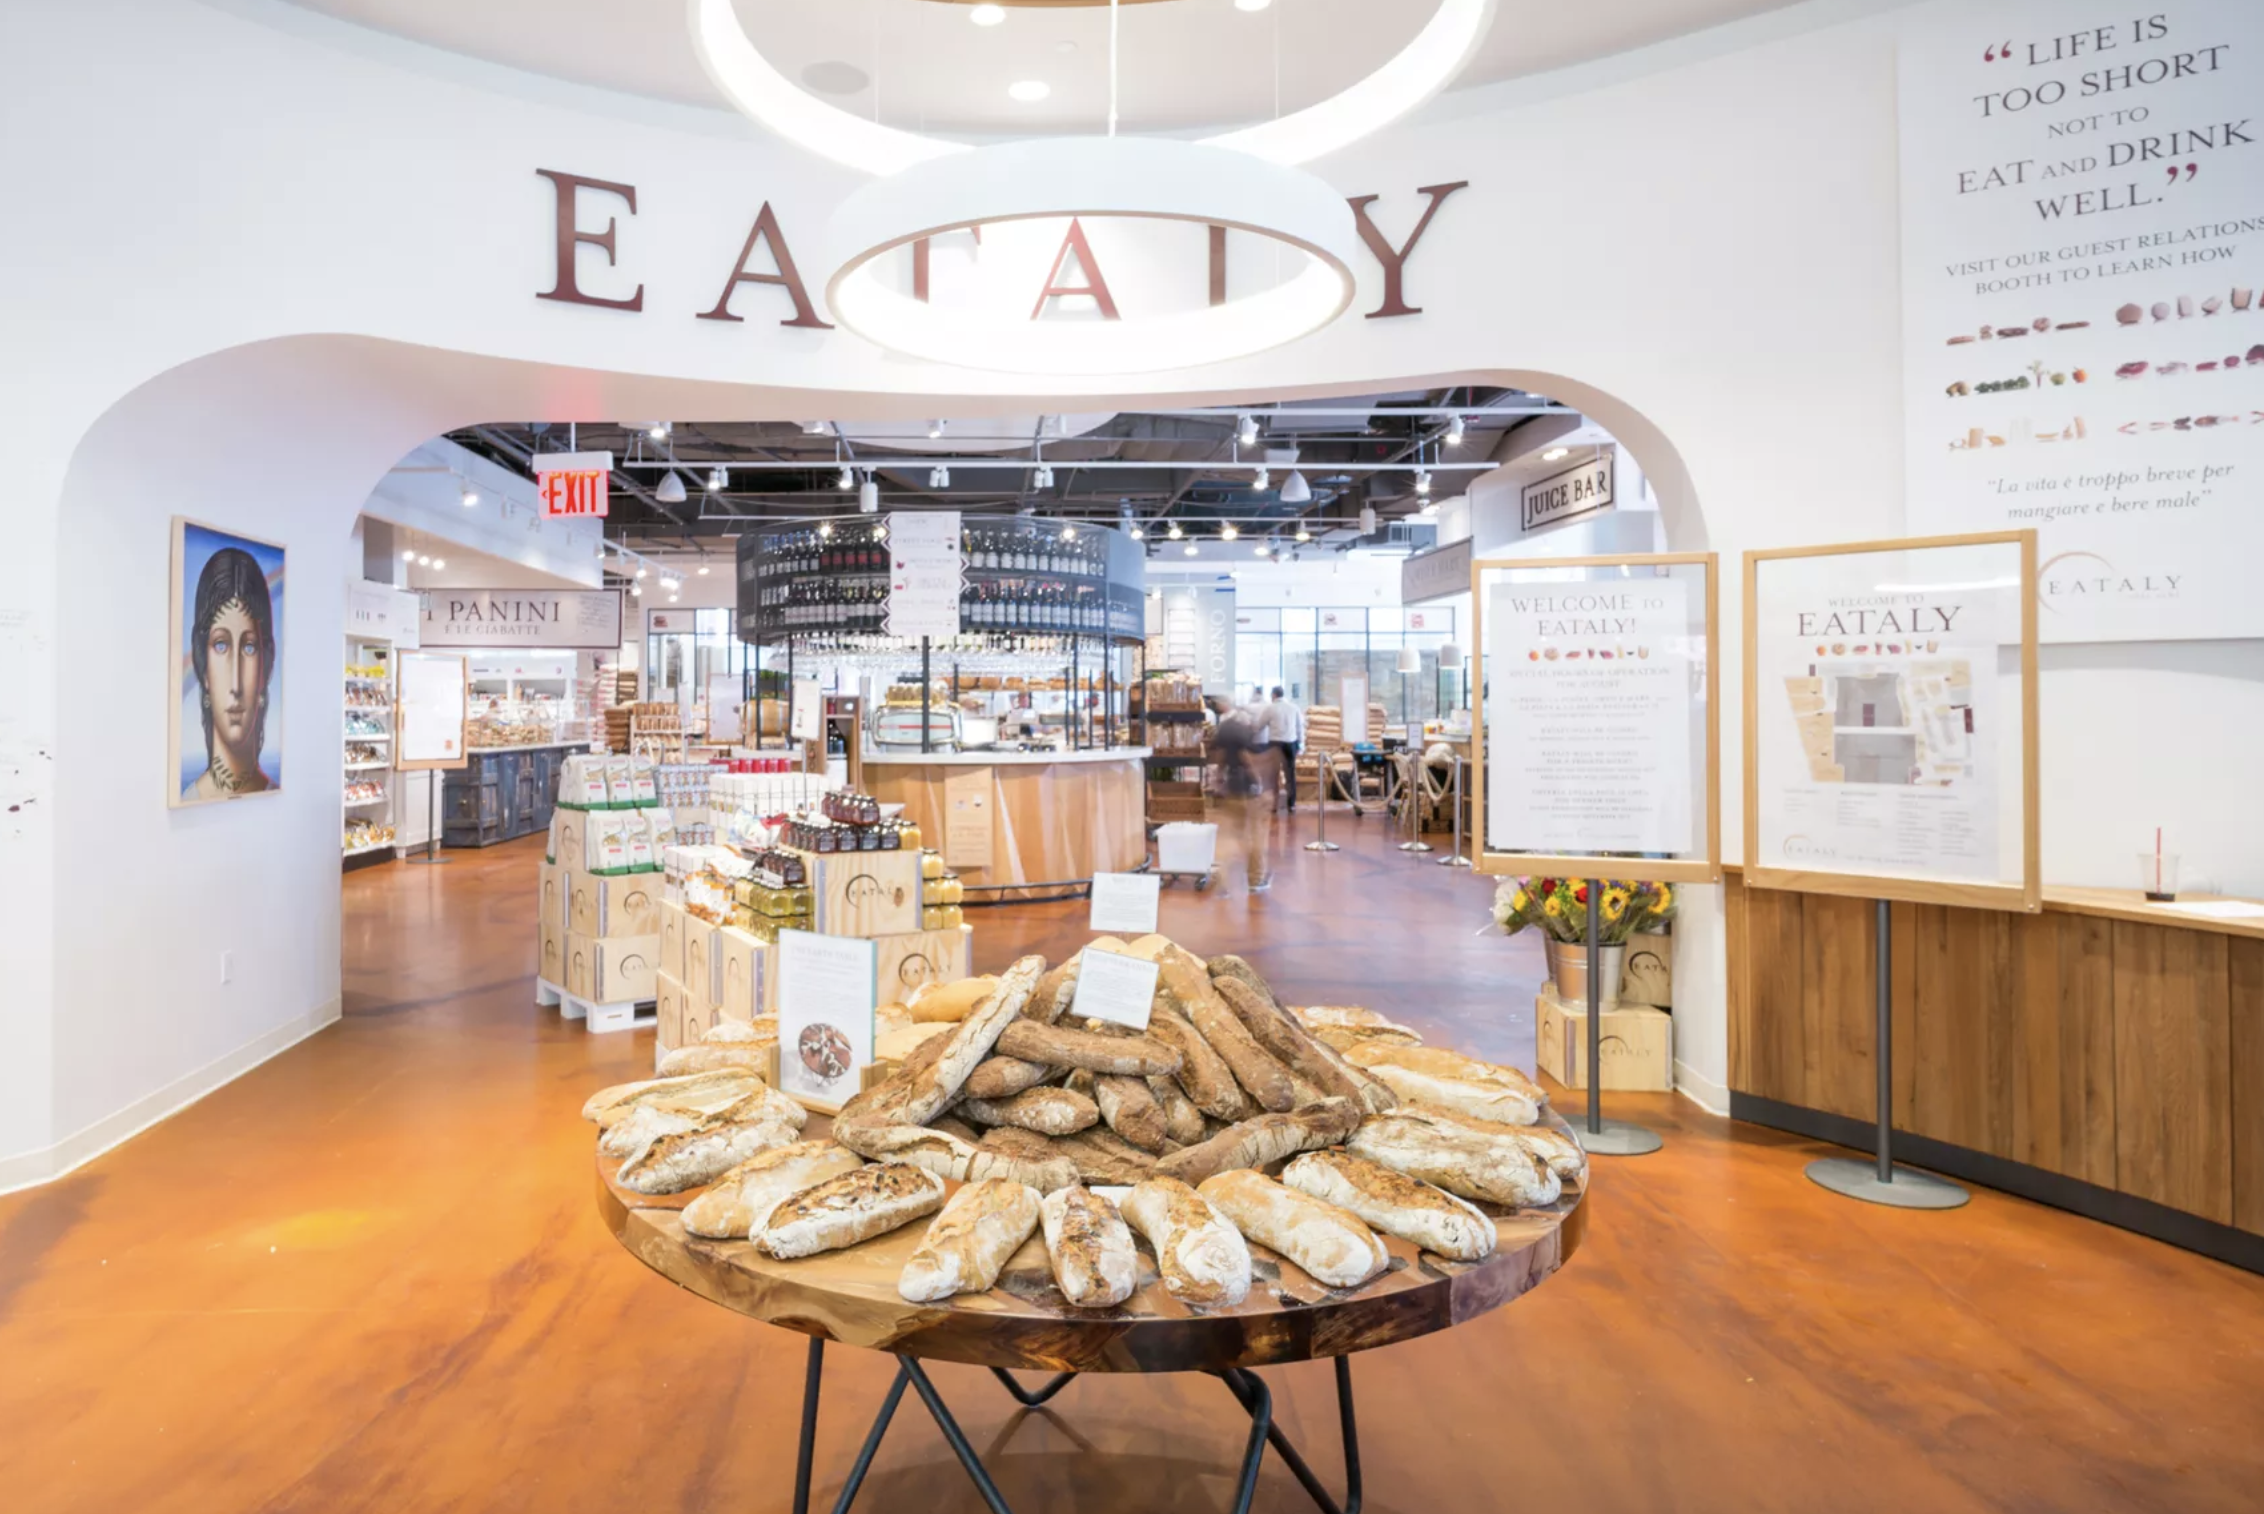 Gourmet Italian Giant Eataly Is Contemplating a Montreal Location